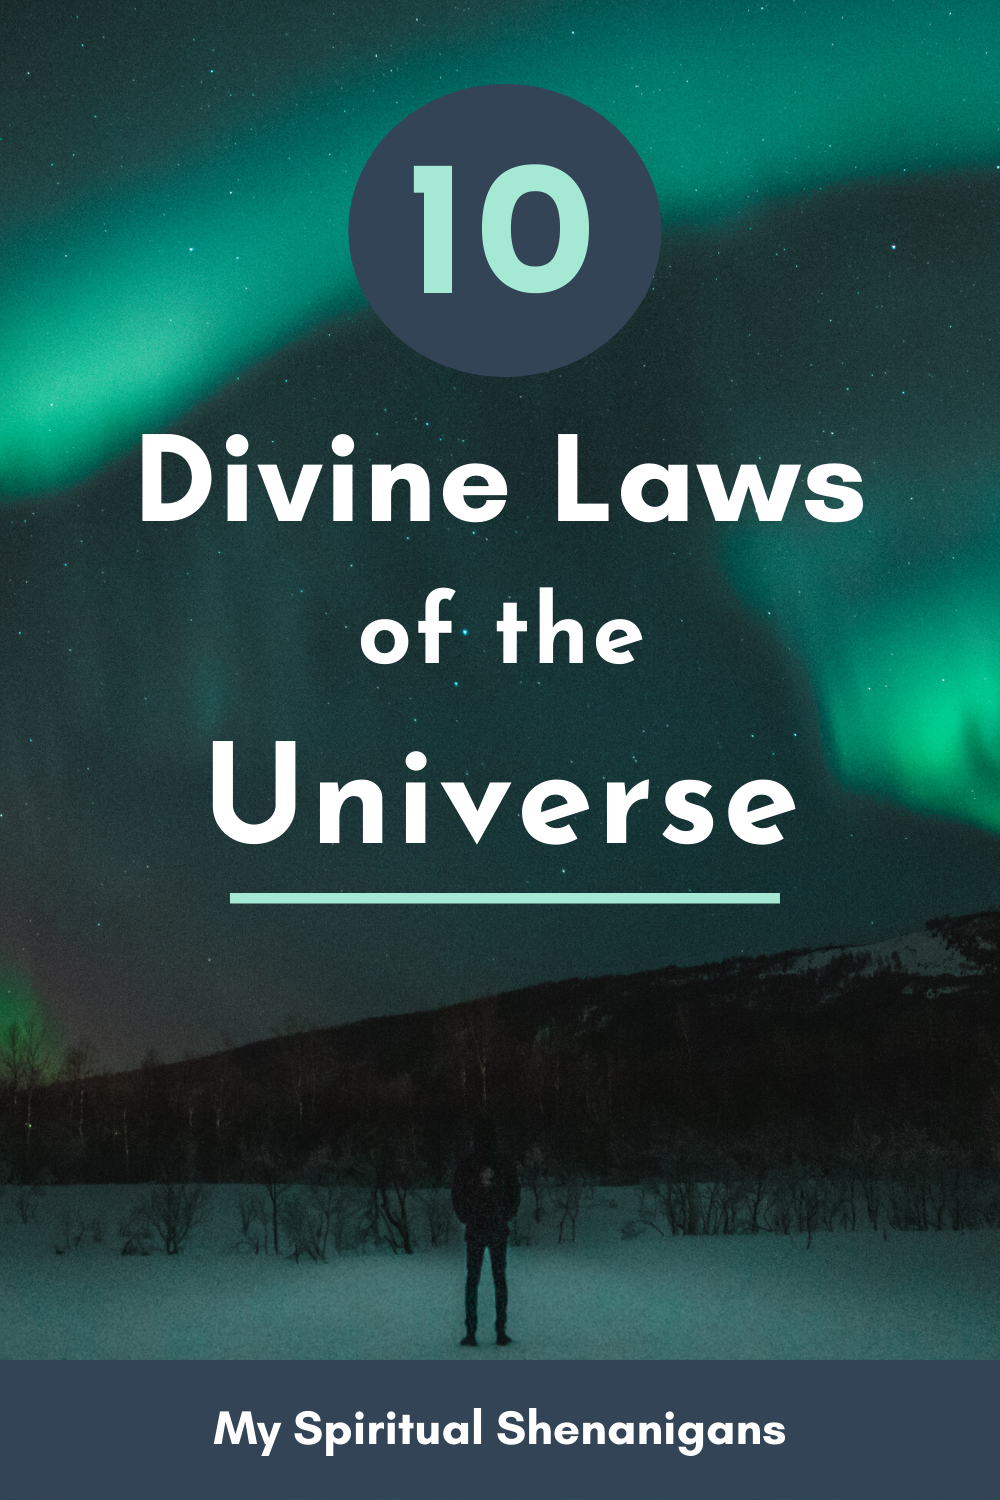 Metaphysics Simplified - 10 Divine Laws of the Universe